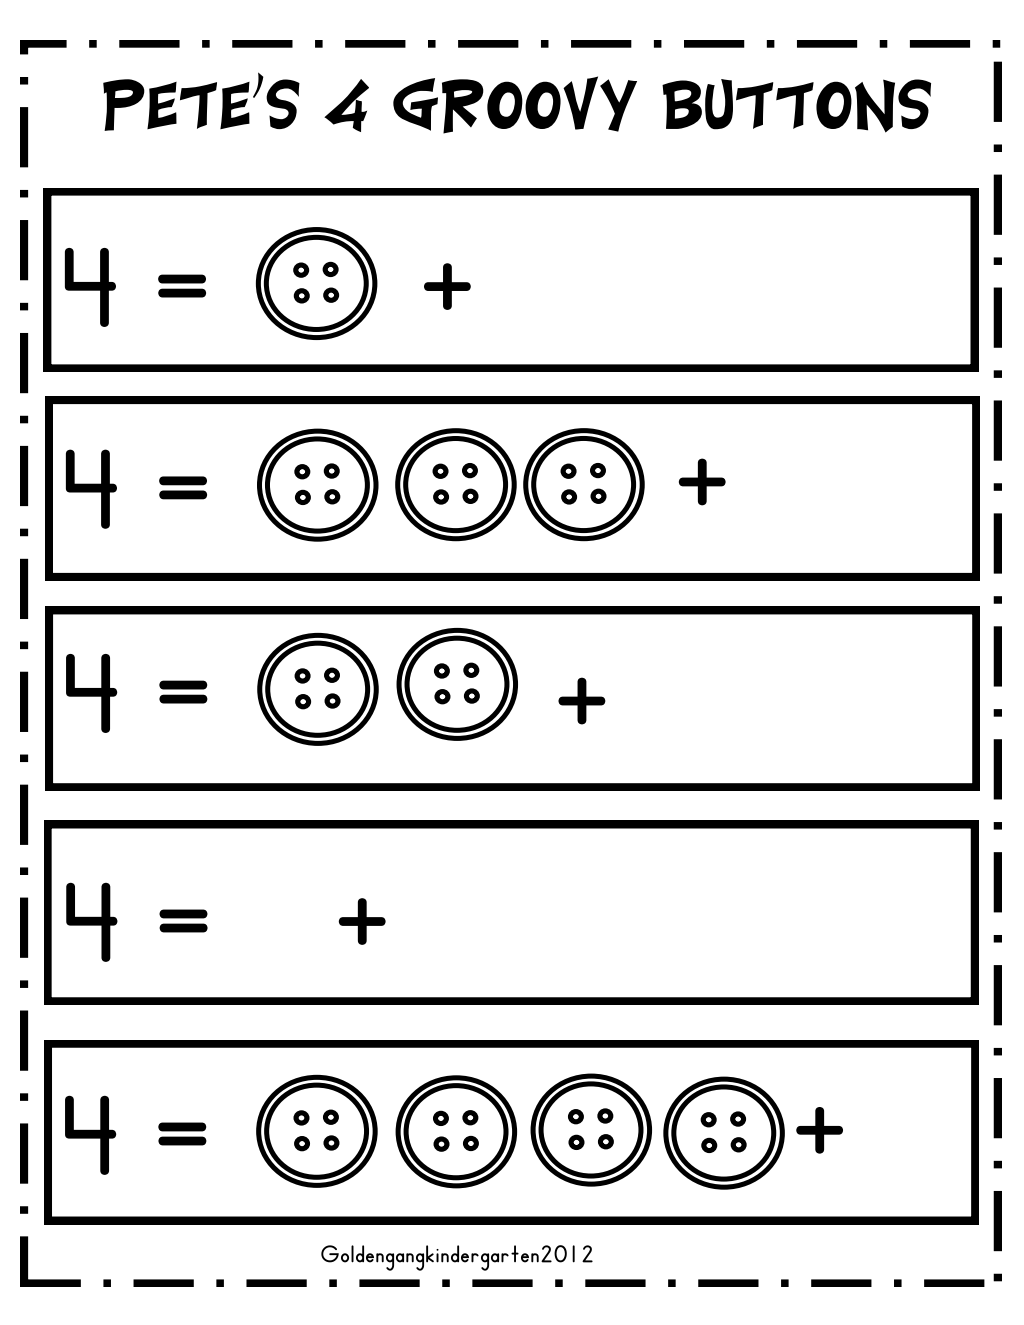 Decomposing 4 Buttons